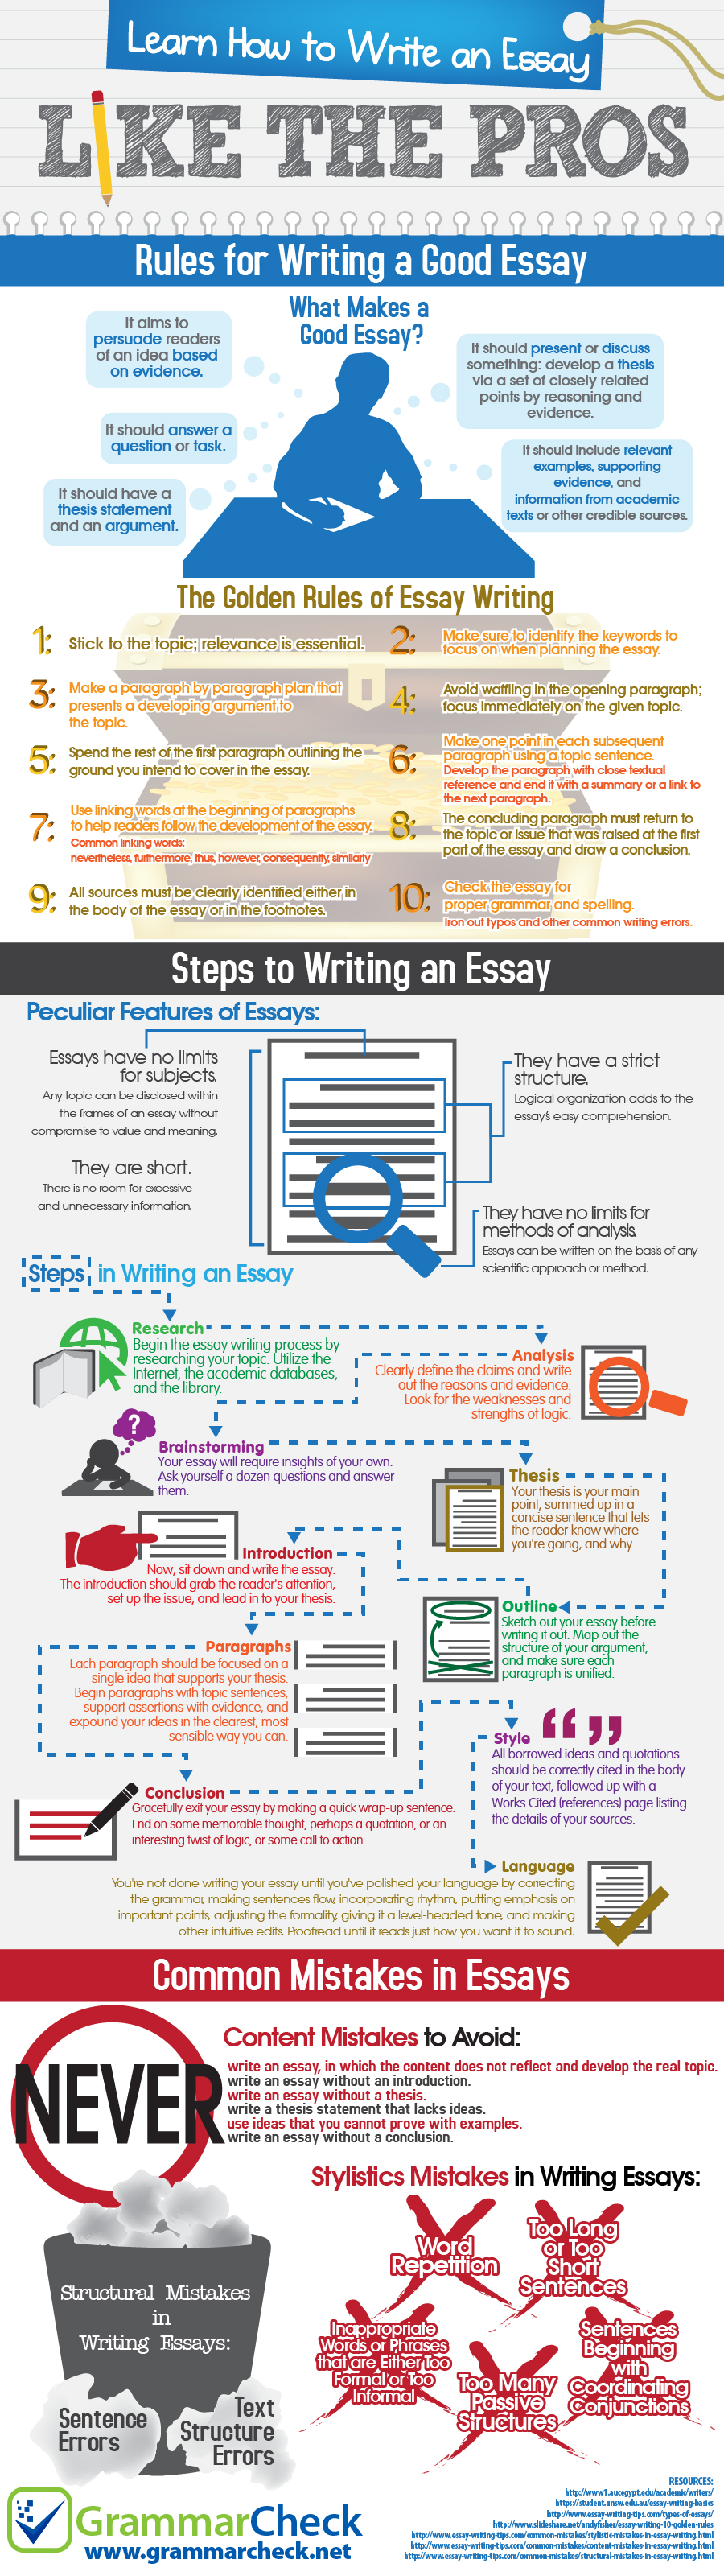 essay review service college application essay review service law school essay review service best do my homework sitesmethodology in research paper example